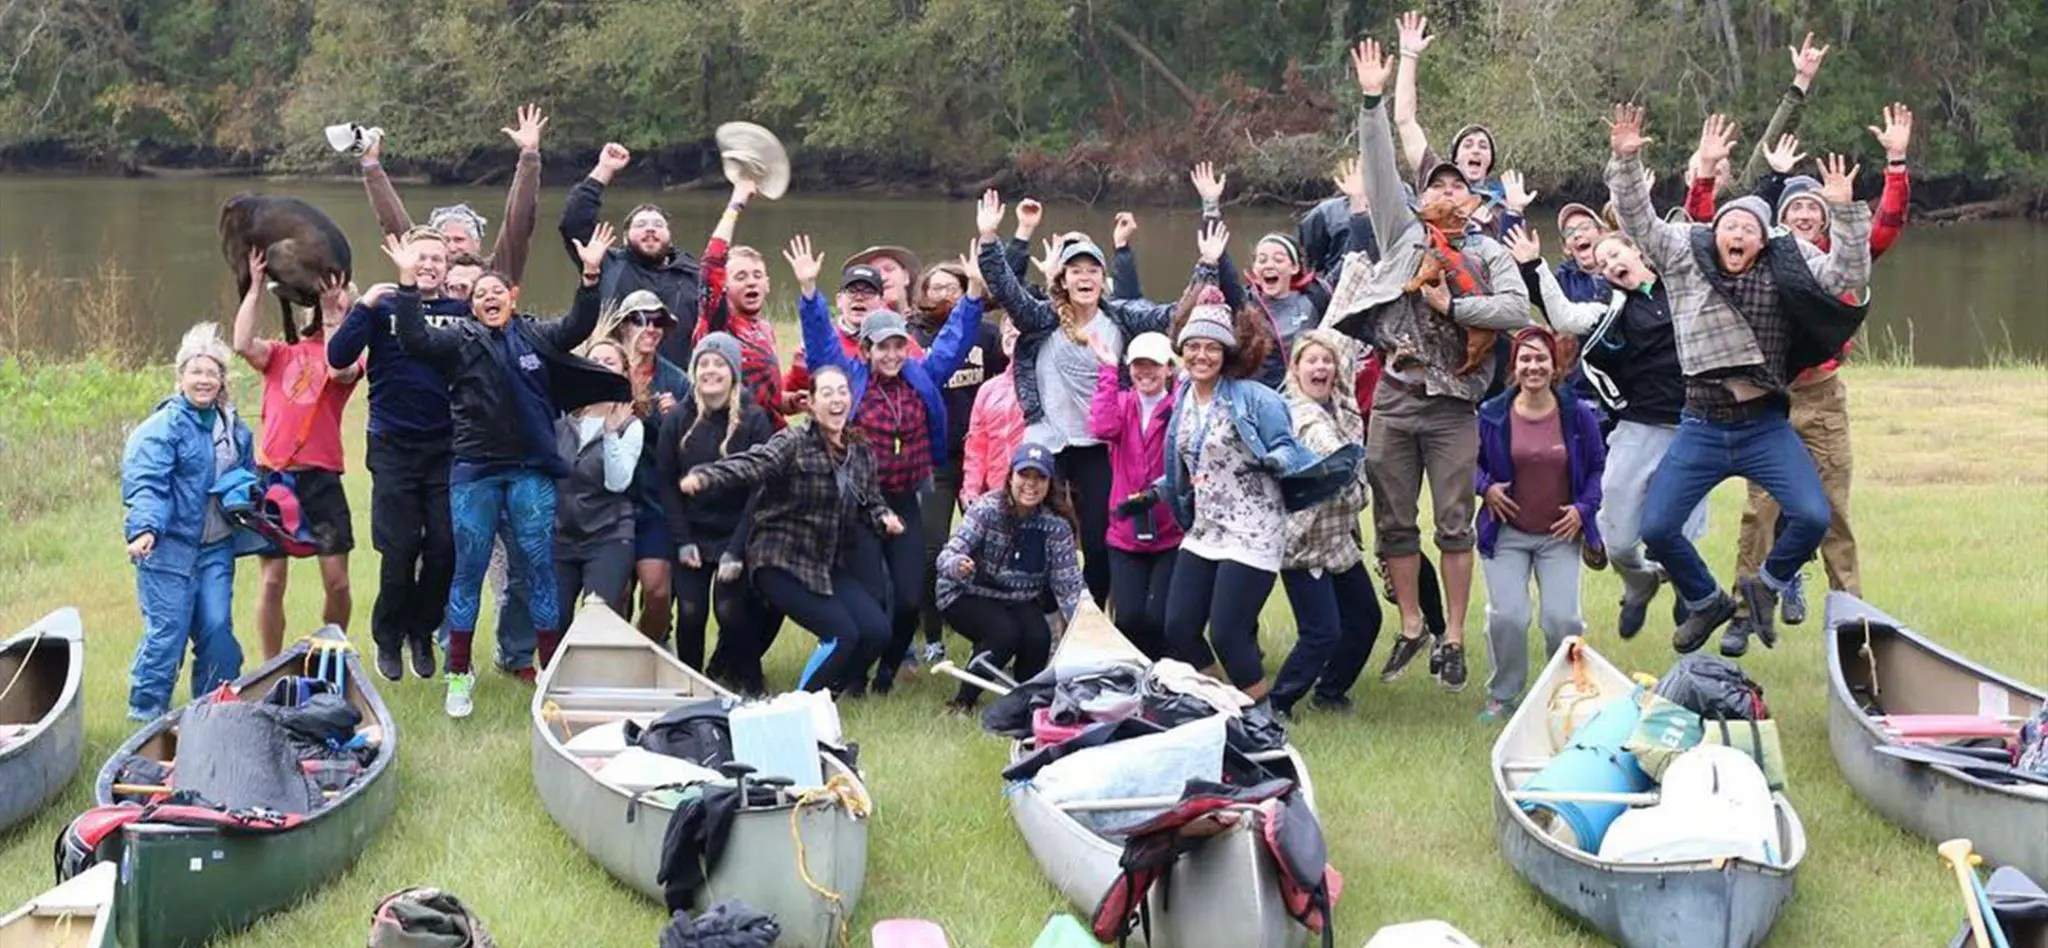 The Outdoor Adventure Club doing a fun group photo at a river with kayaks.